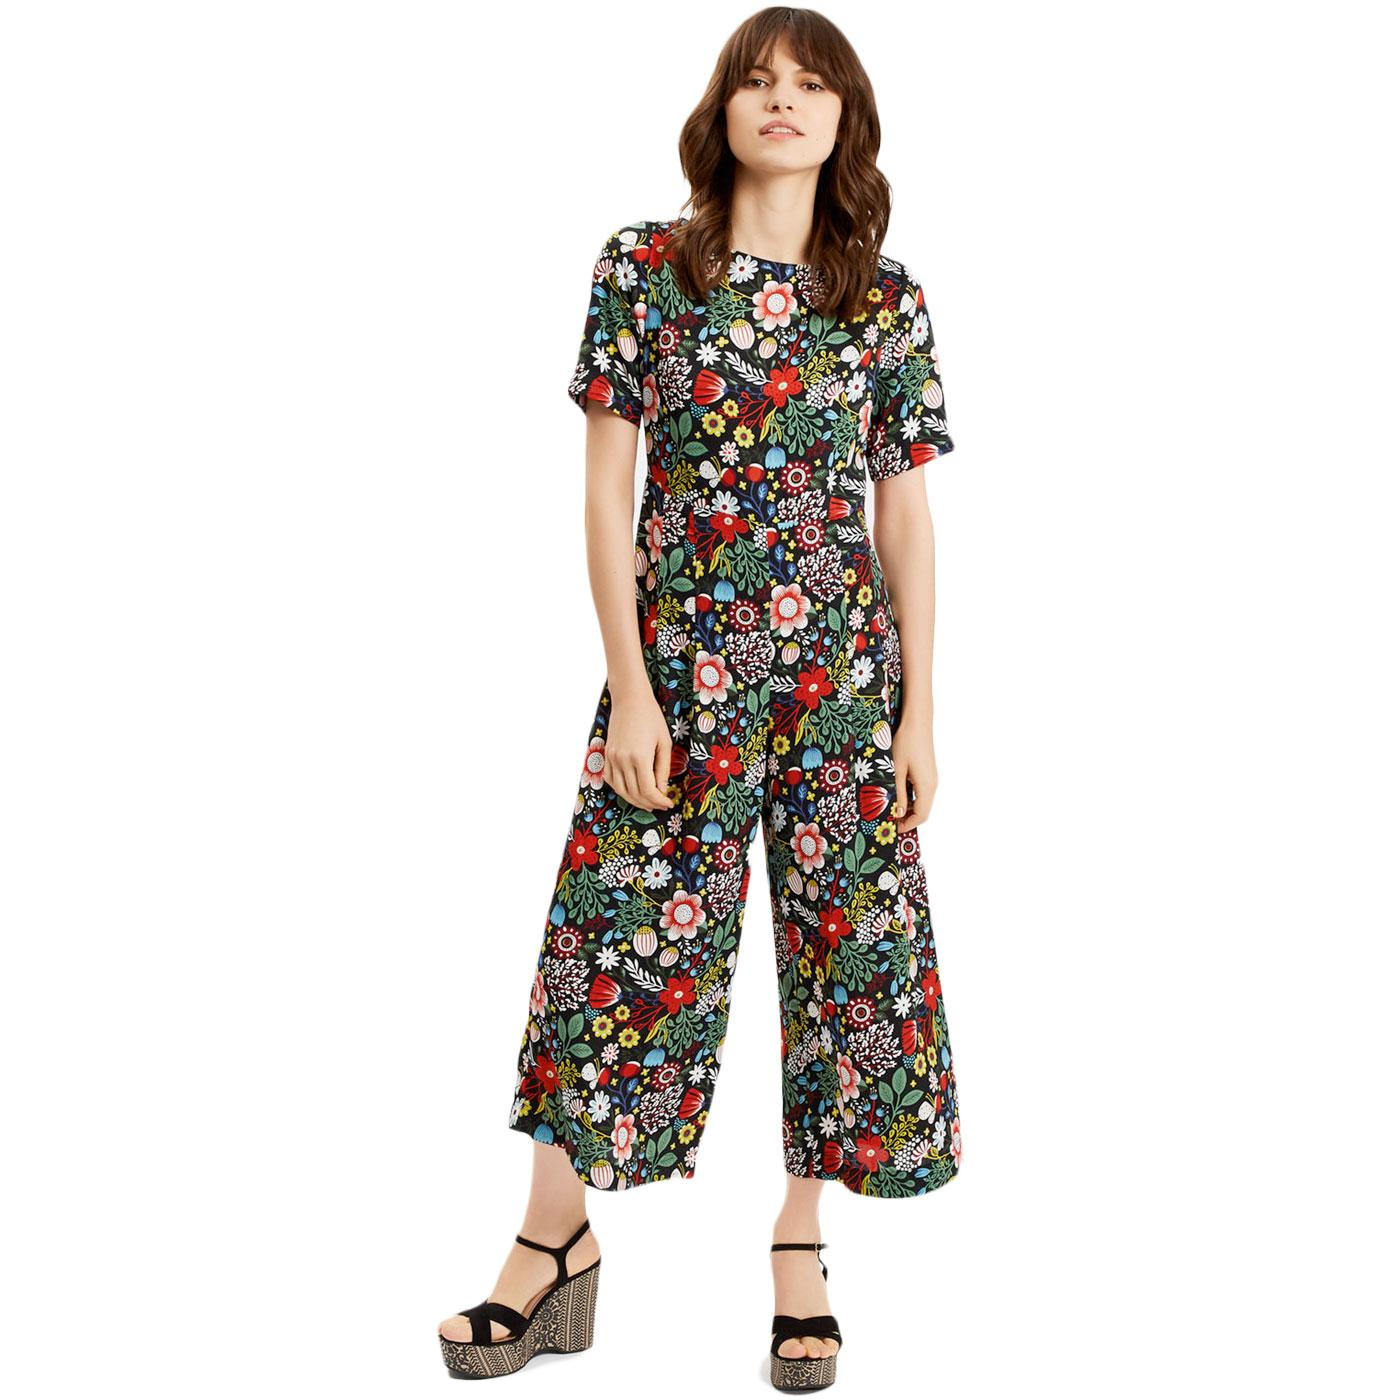 Bianca TRAFFIC PEOPLE Retro 70s Floral Jumpsuit